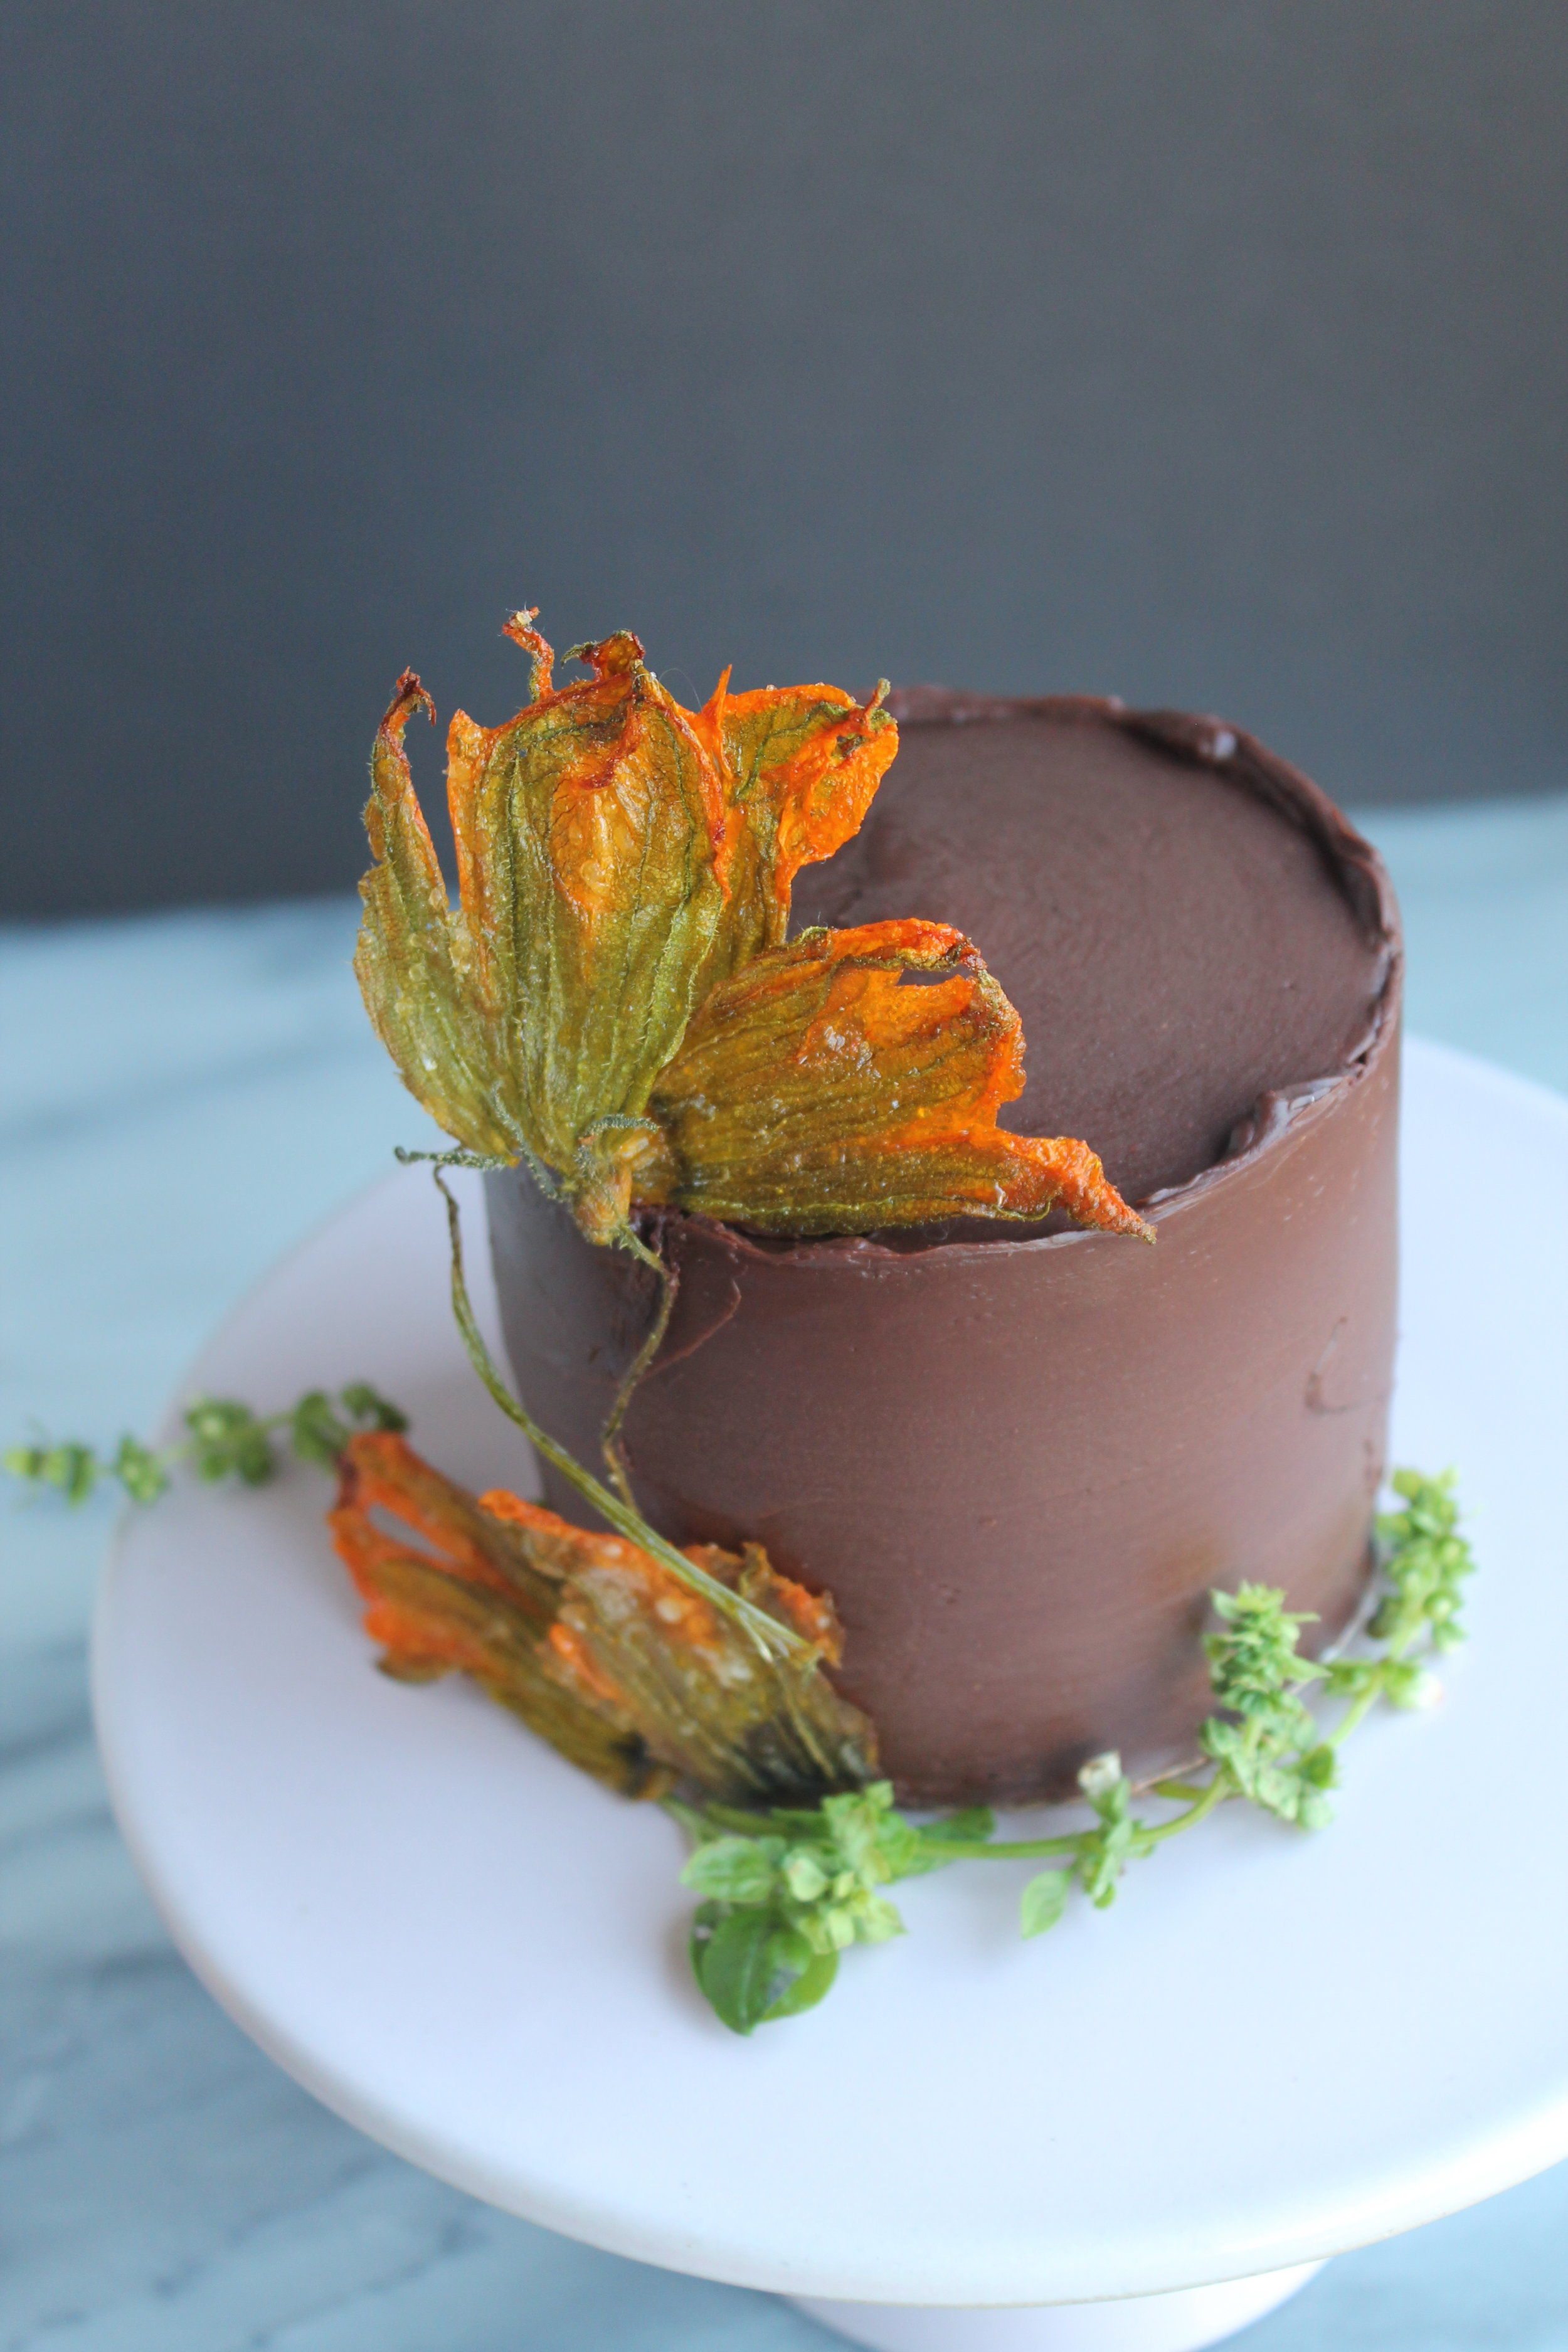 How to Make Chocolate Zucchini Cake with Candied Squash Blossoms